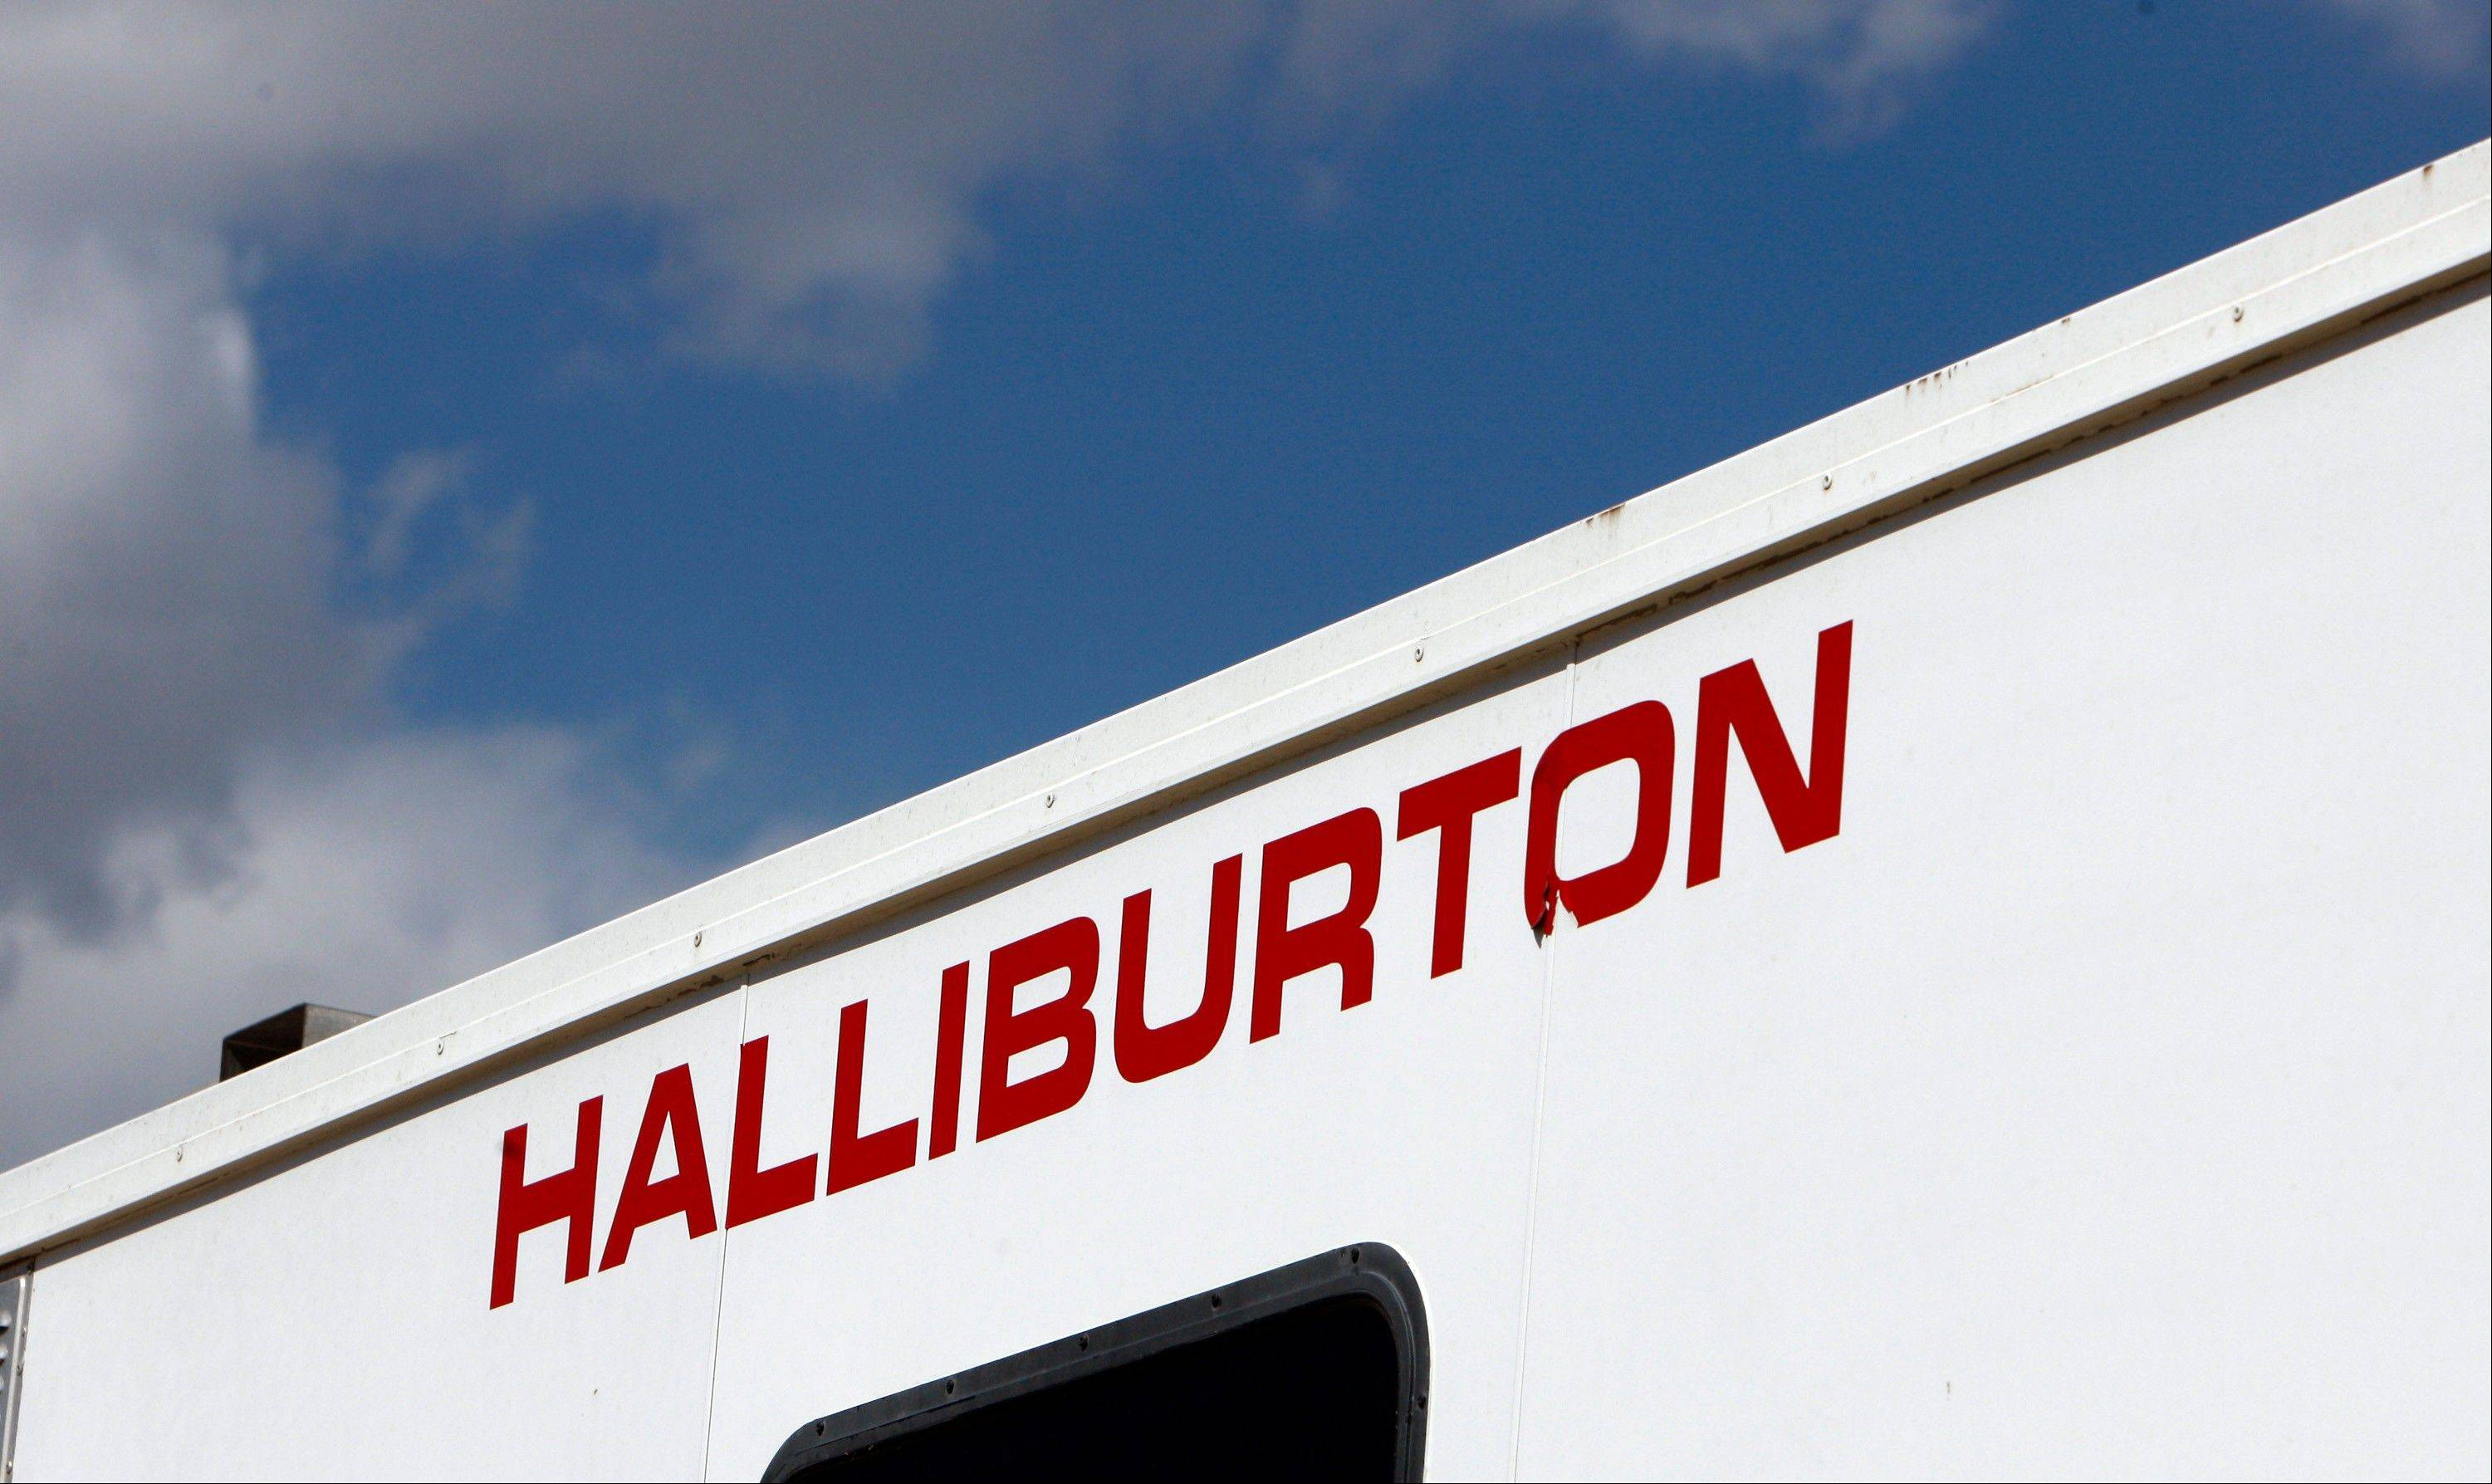 Halliburton's fourth-quarter net income rose 19 percent, led by growth in its international operations.